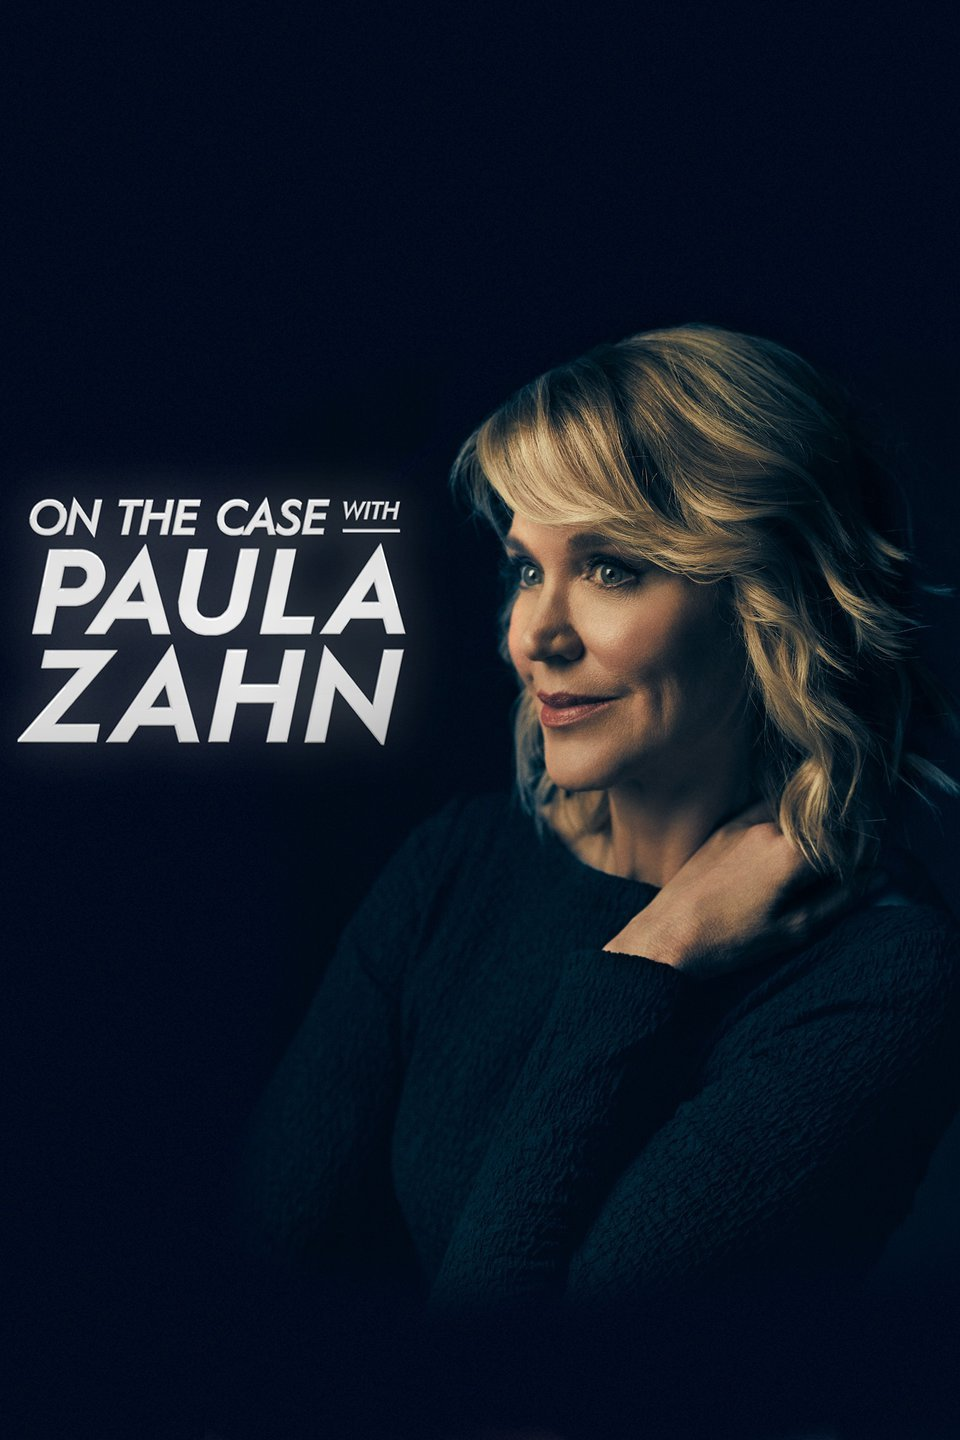 On The Case With Paula Zahn - Season 20 Episode 14 - A Test of Patience